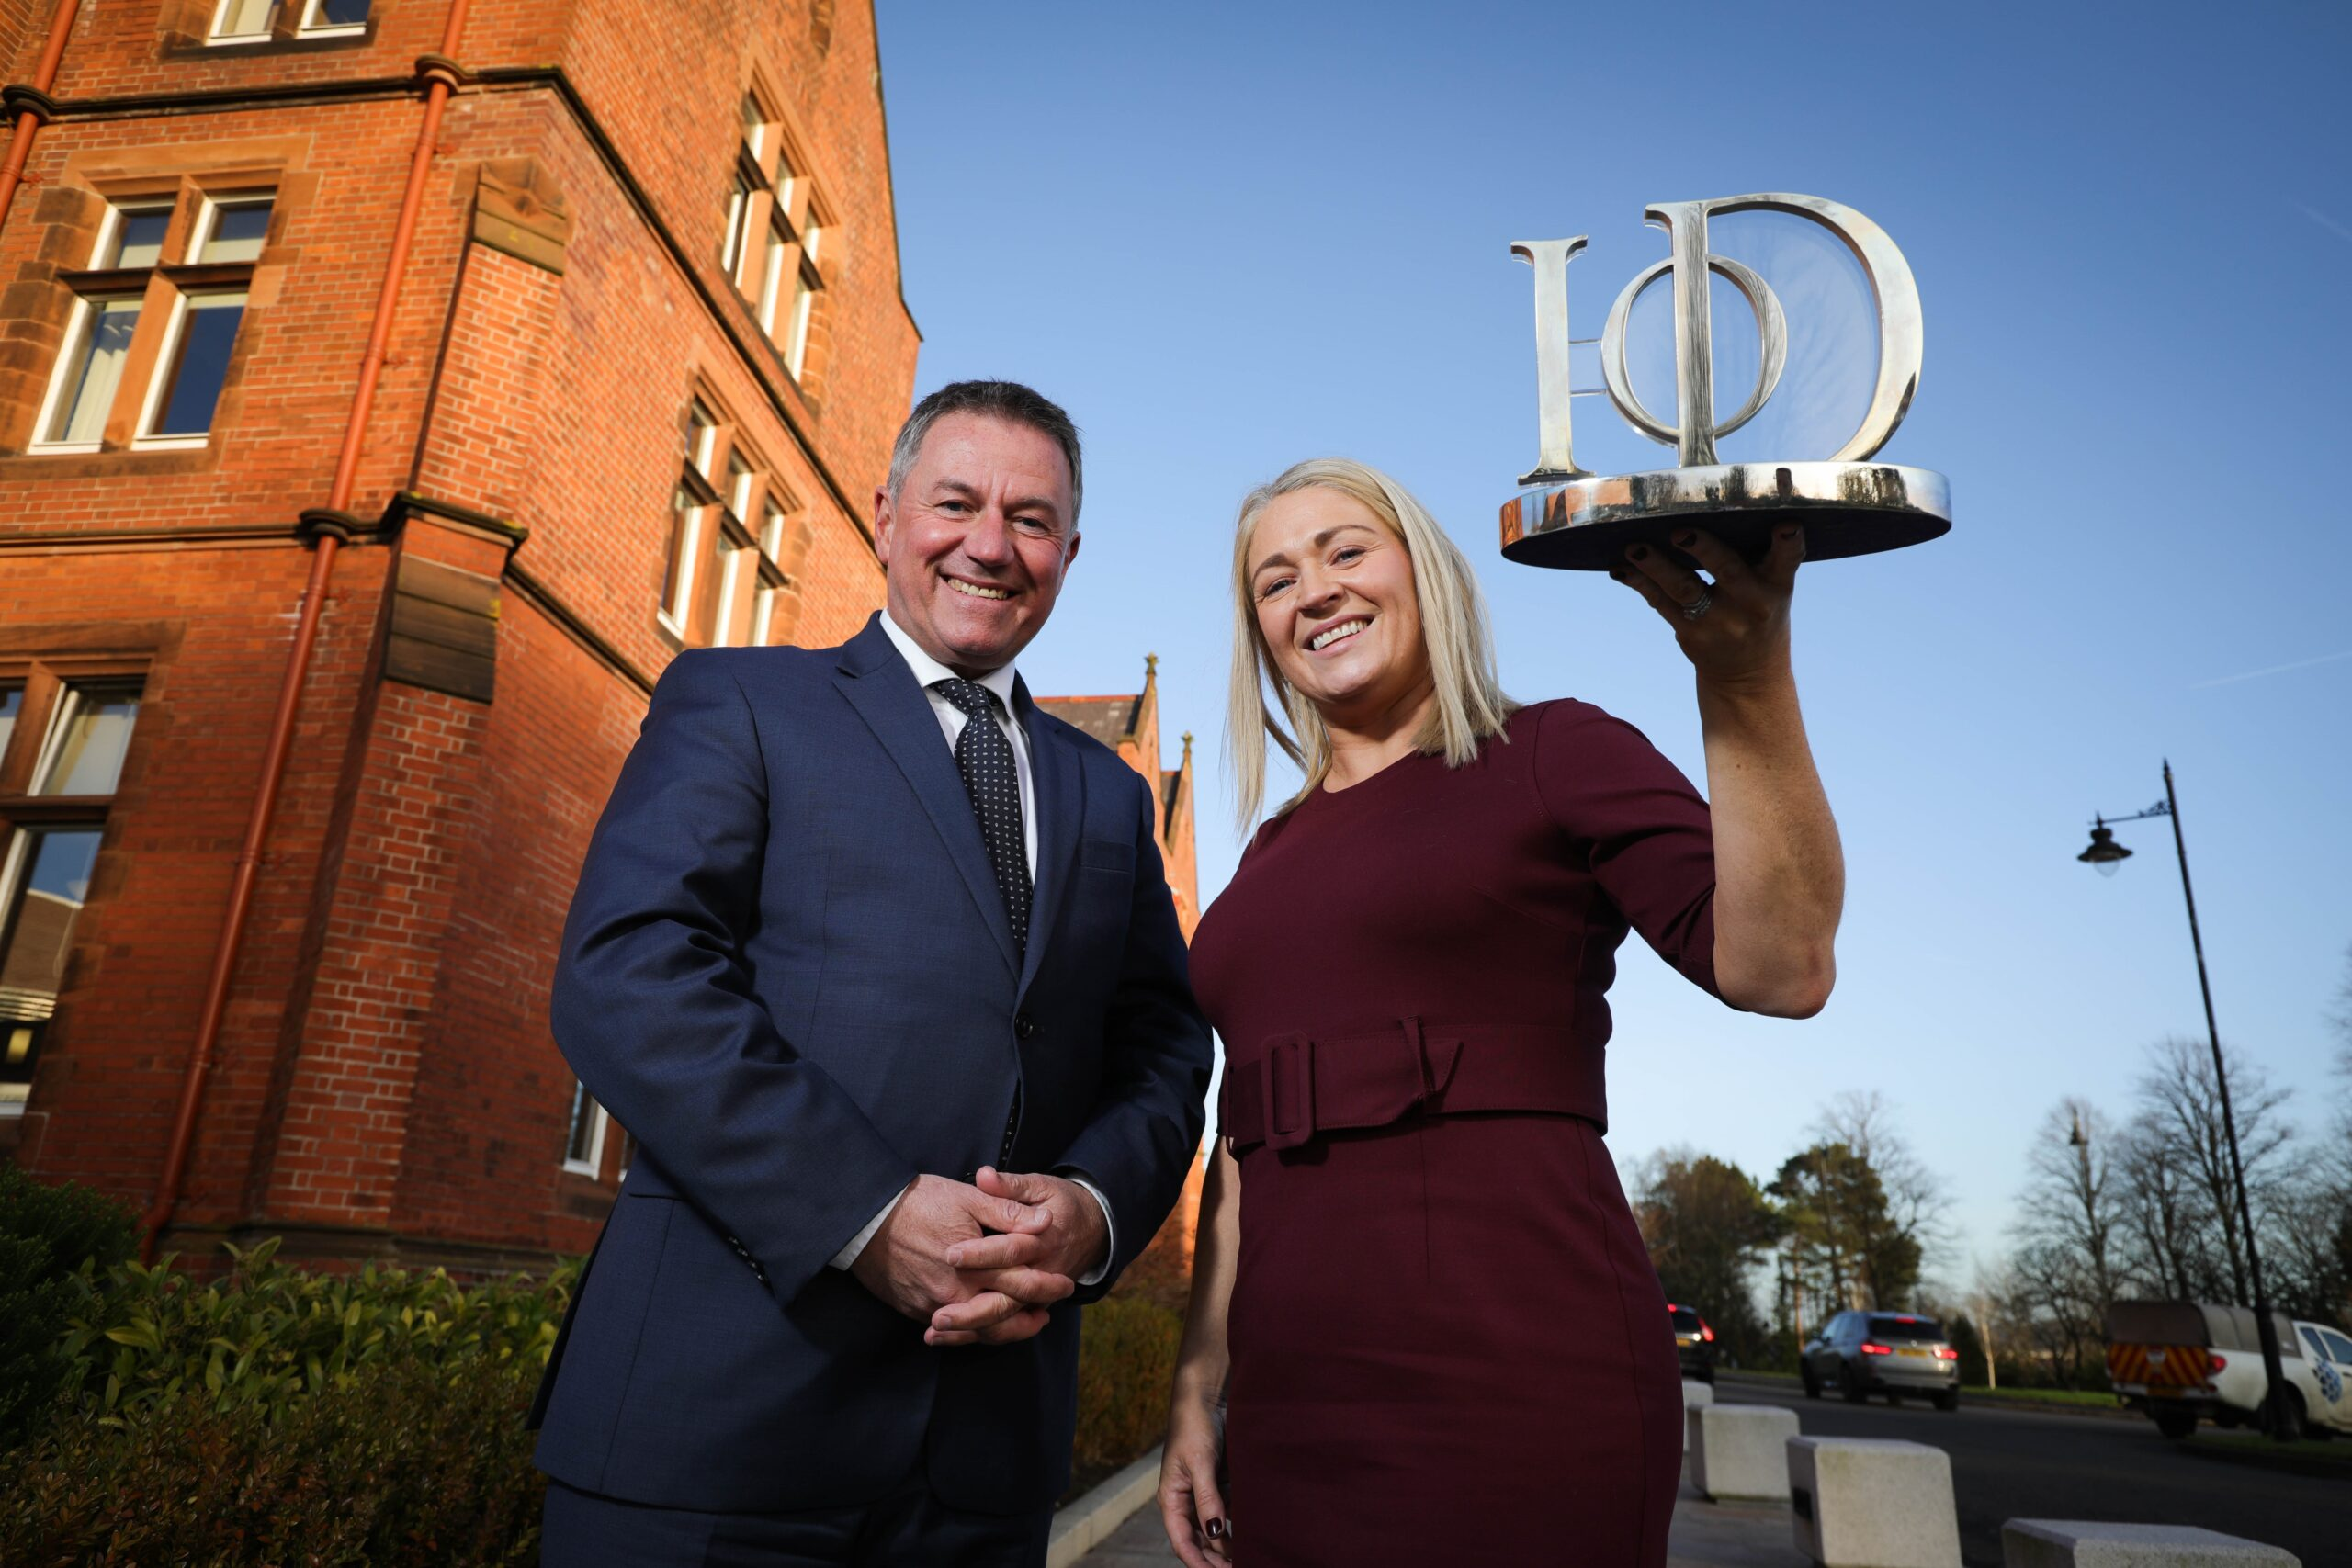 Deli Lites Newry CEO Brian Reid - IoD Director of the Year Awards - Northern Ireland business news - Freelance NI Copywriter